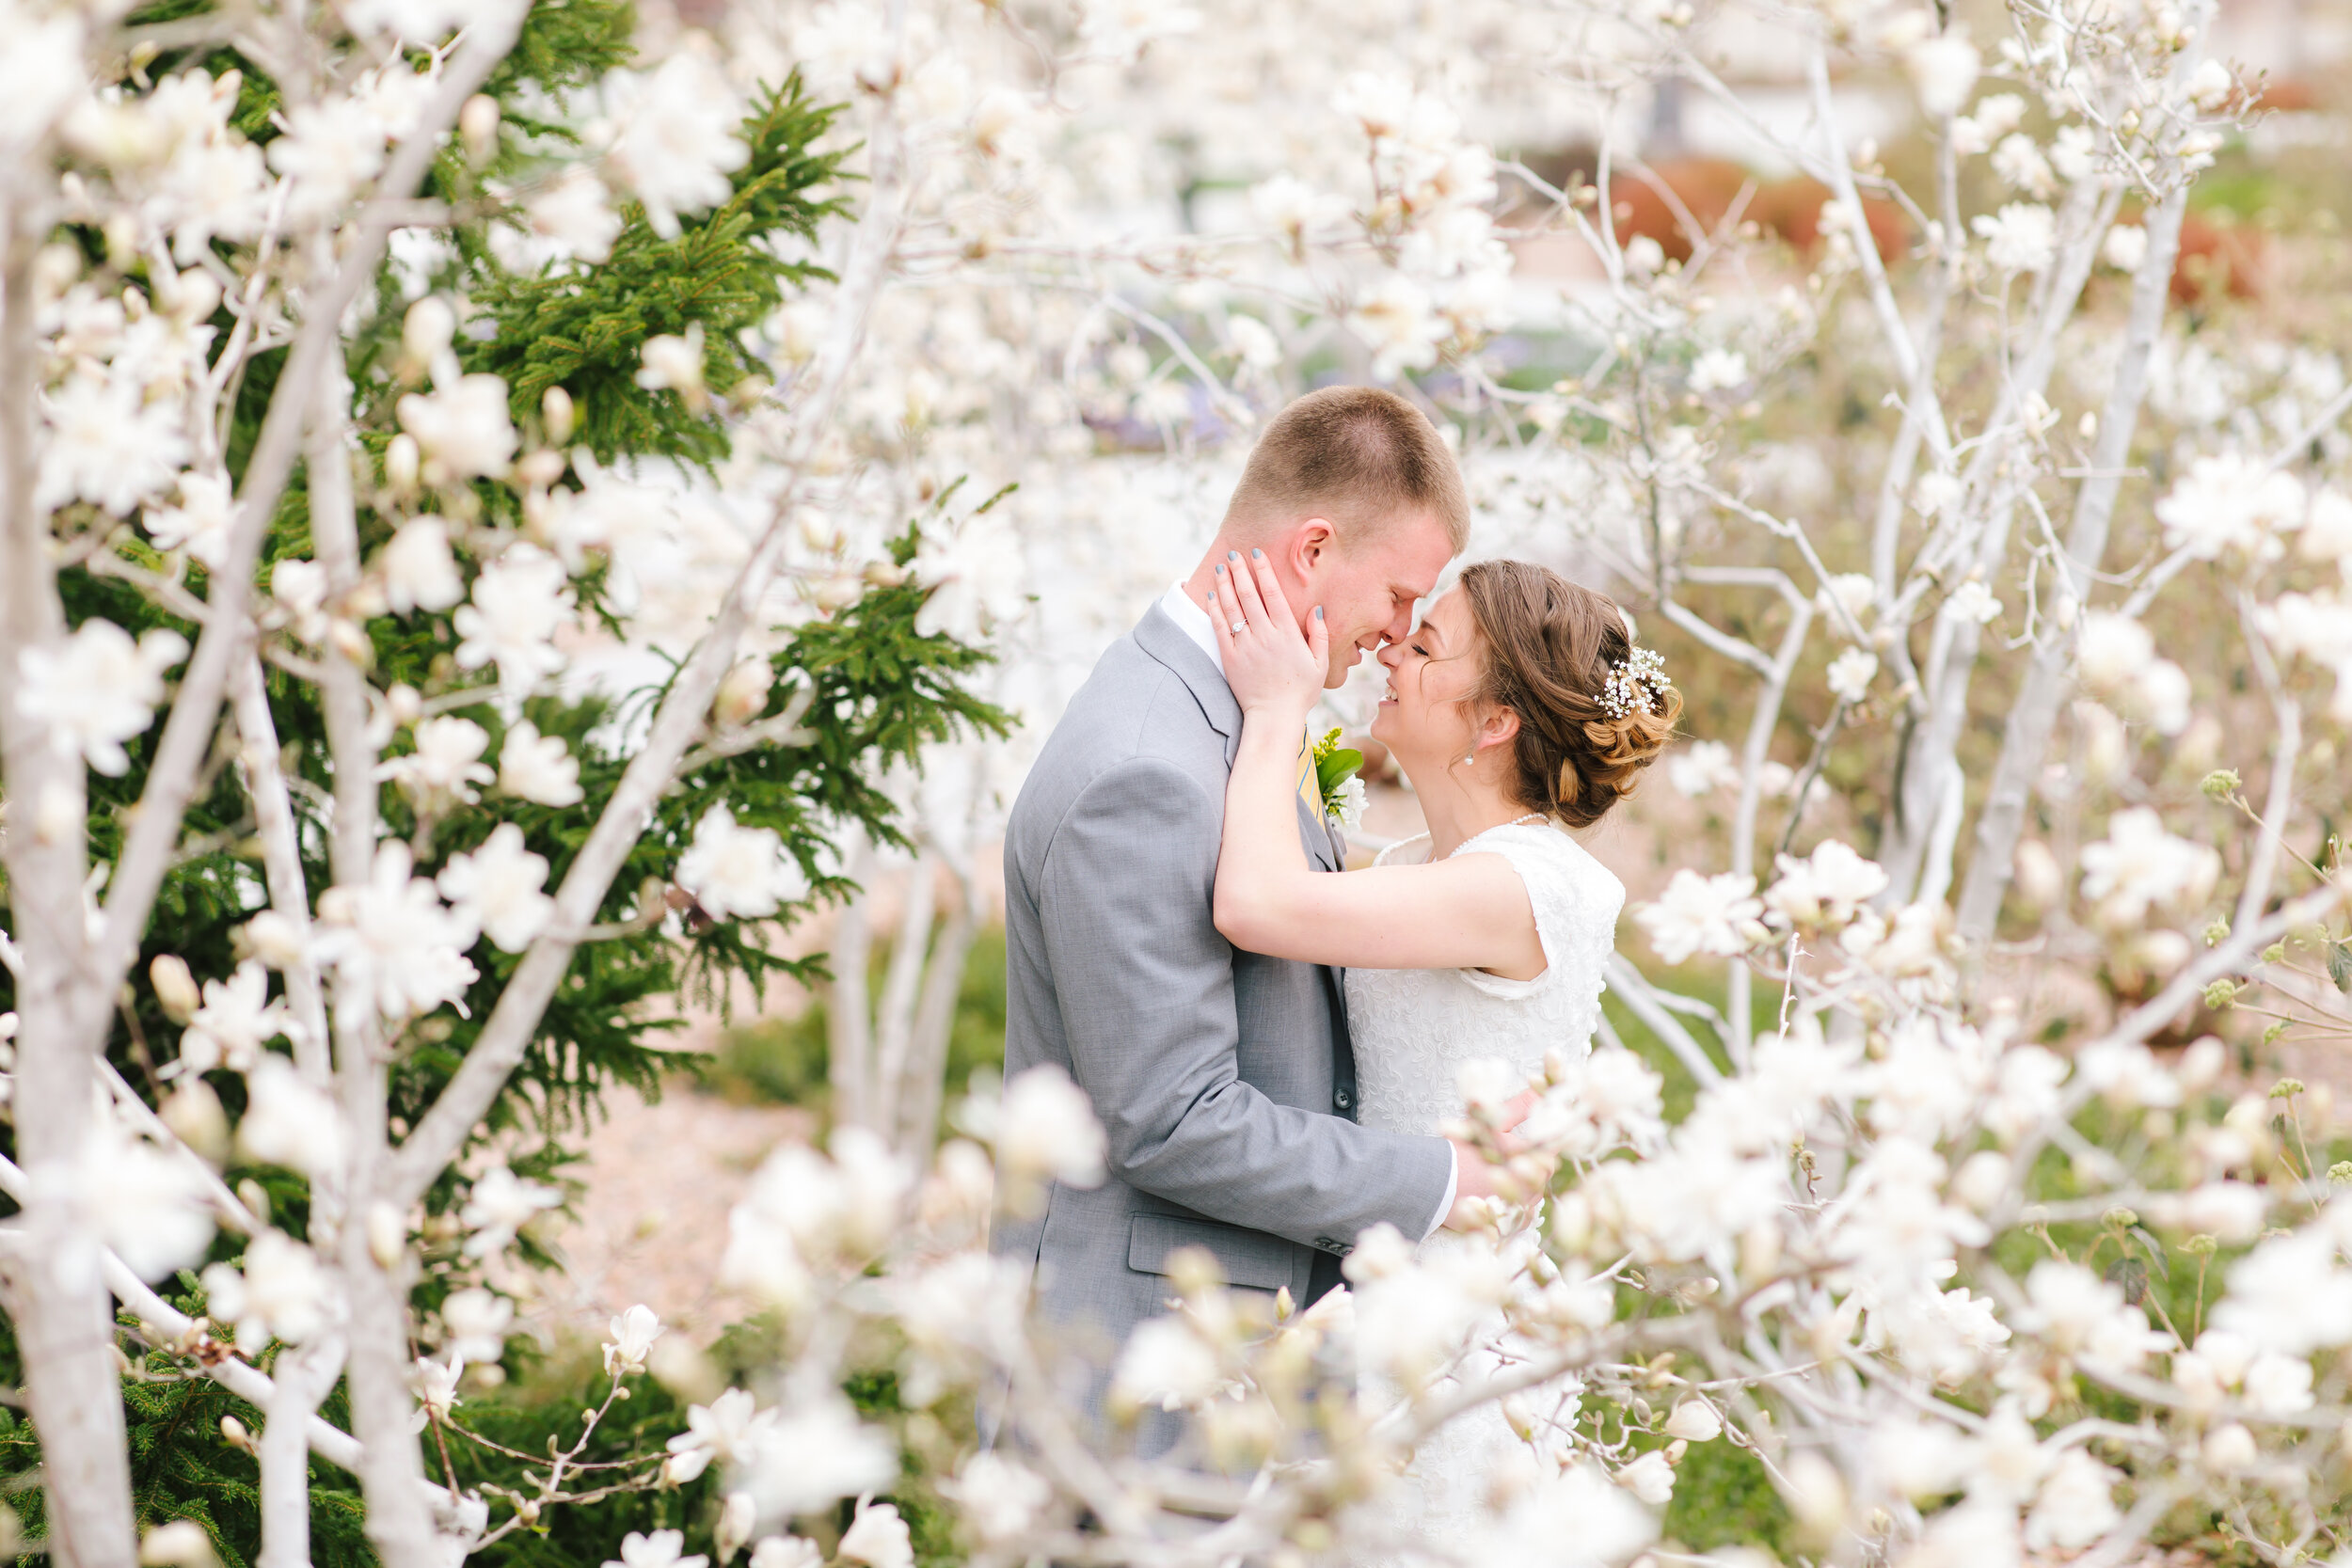 unique wedding picture inspiration cherry tree blossom picture through the trees couple goals white cherry blossoms happy couple flowers in the hair wedding hairstyle inspiration families are forever lds couple beautiful couple payson temple wedding wedding goals #eternalbuddies #weddingsession #weddinginspo #ldswedding #ldsbride #couplegoals #paysontemple #temple #profressionalphotographer #utah #love